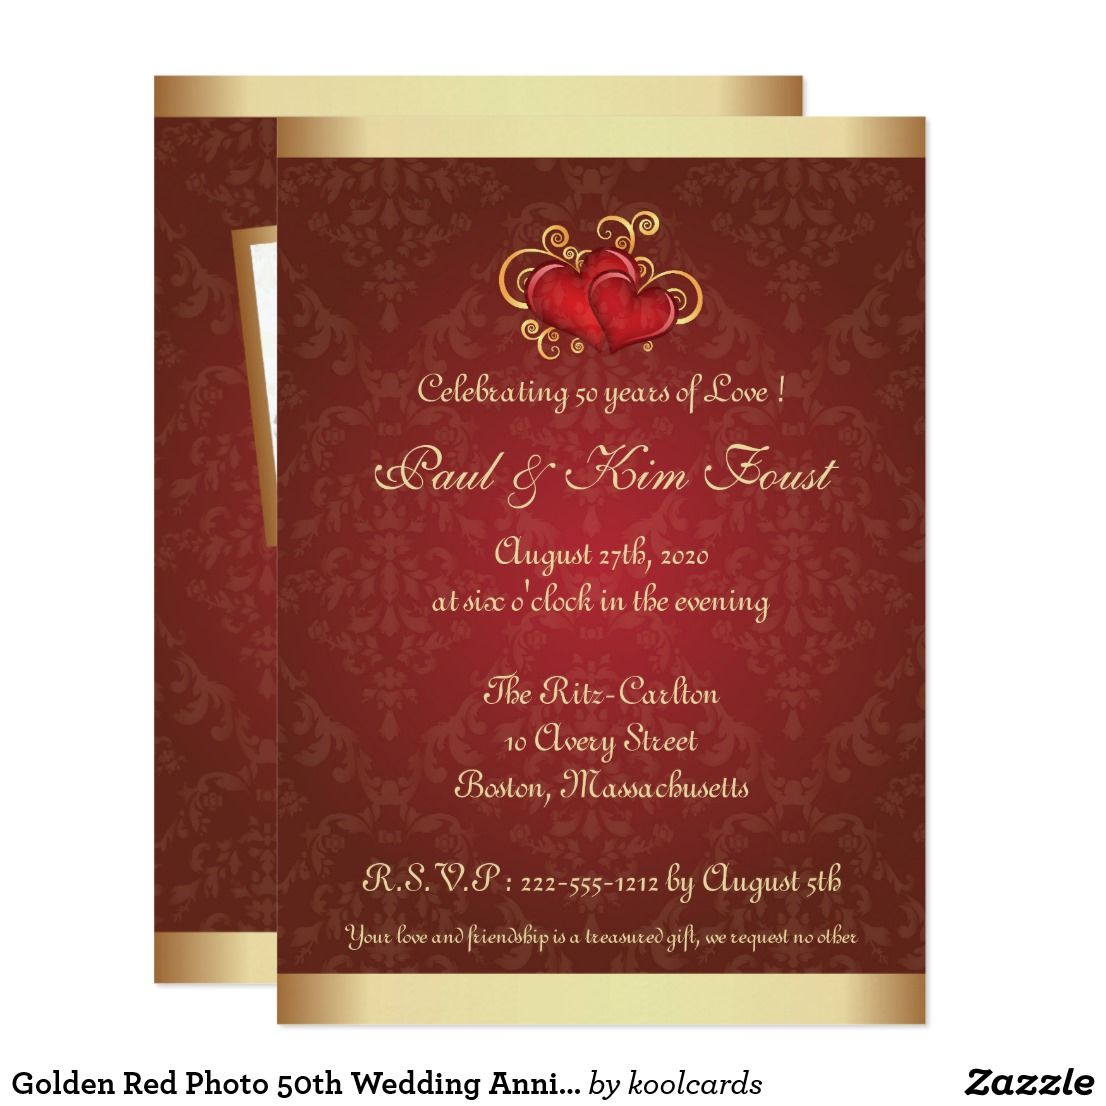 Golden Red Photo 50th Wedding Anniversary Invite Zazzle Com 50th Wedding Anniversary Wedding Anniversary Party Invitations Golden Wedding Anniversary Party